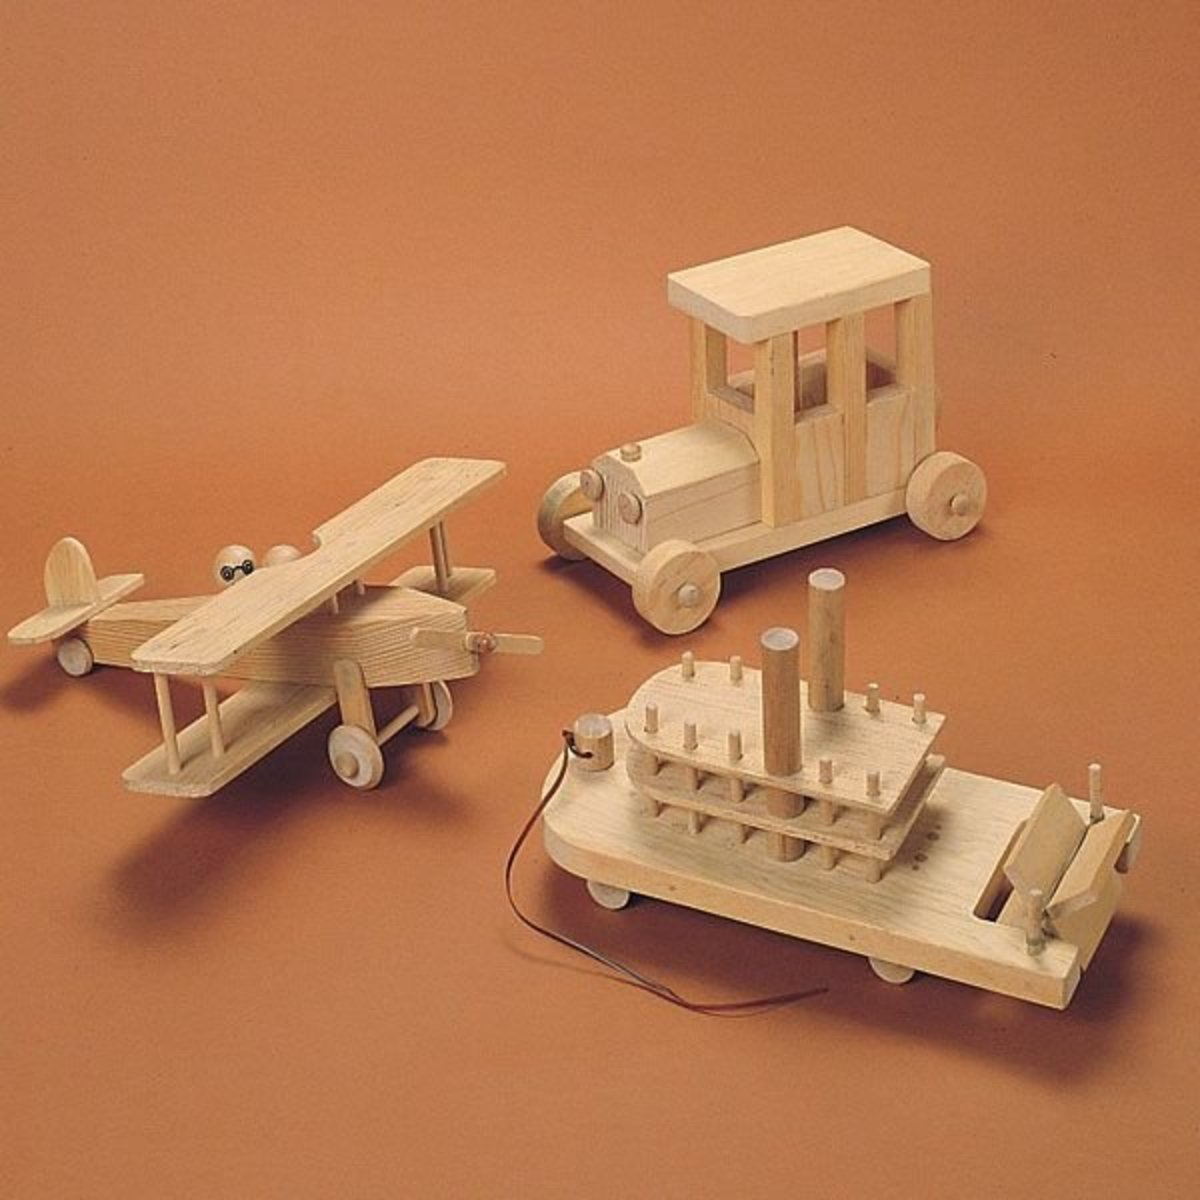 u bild - woodworking project paper plan to build wooden toys